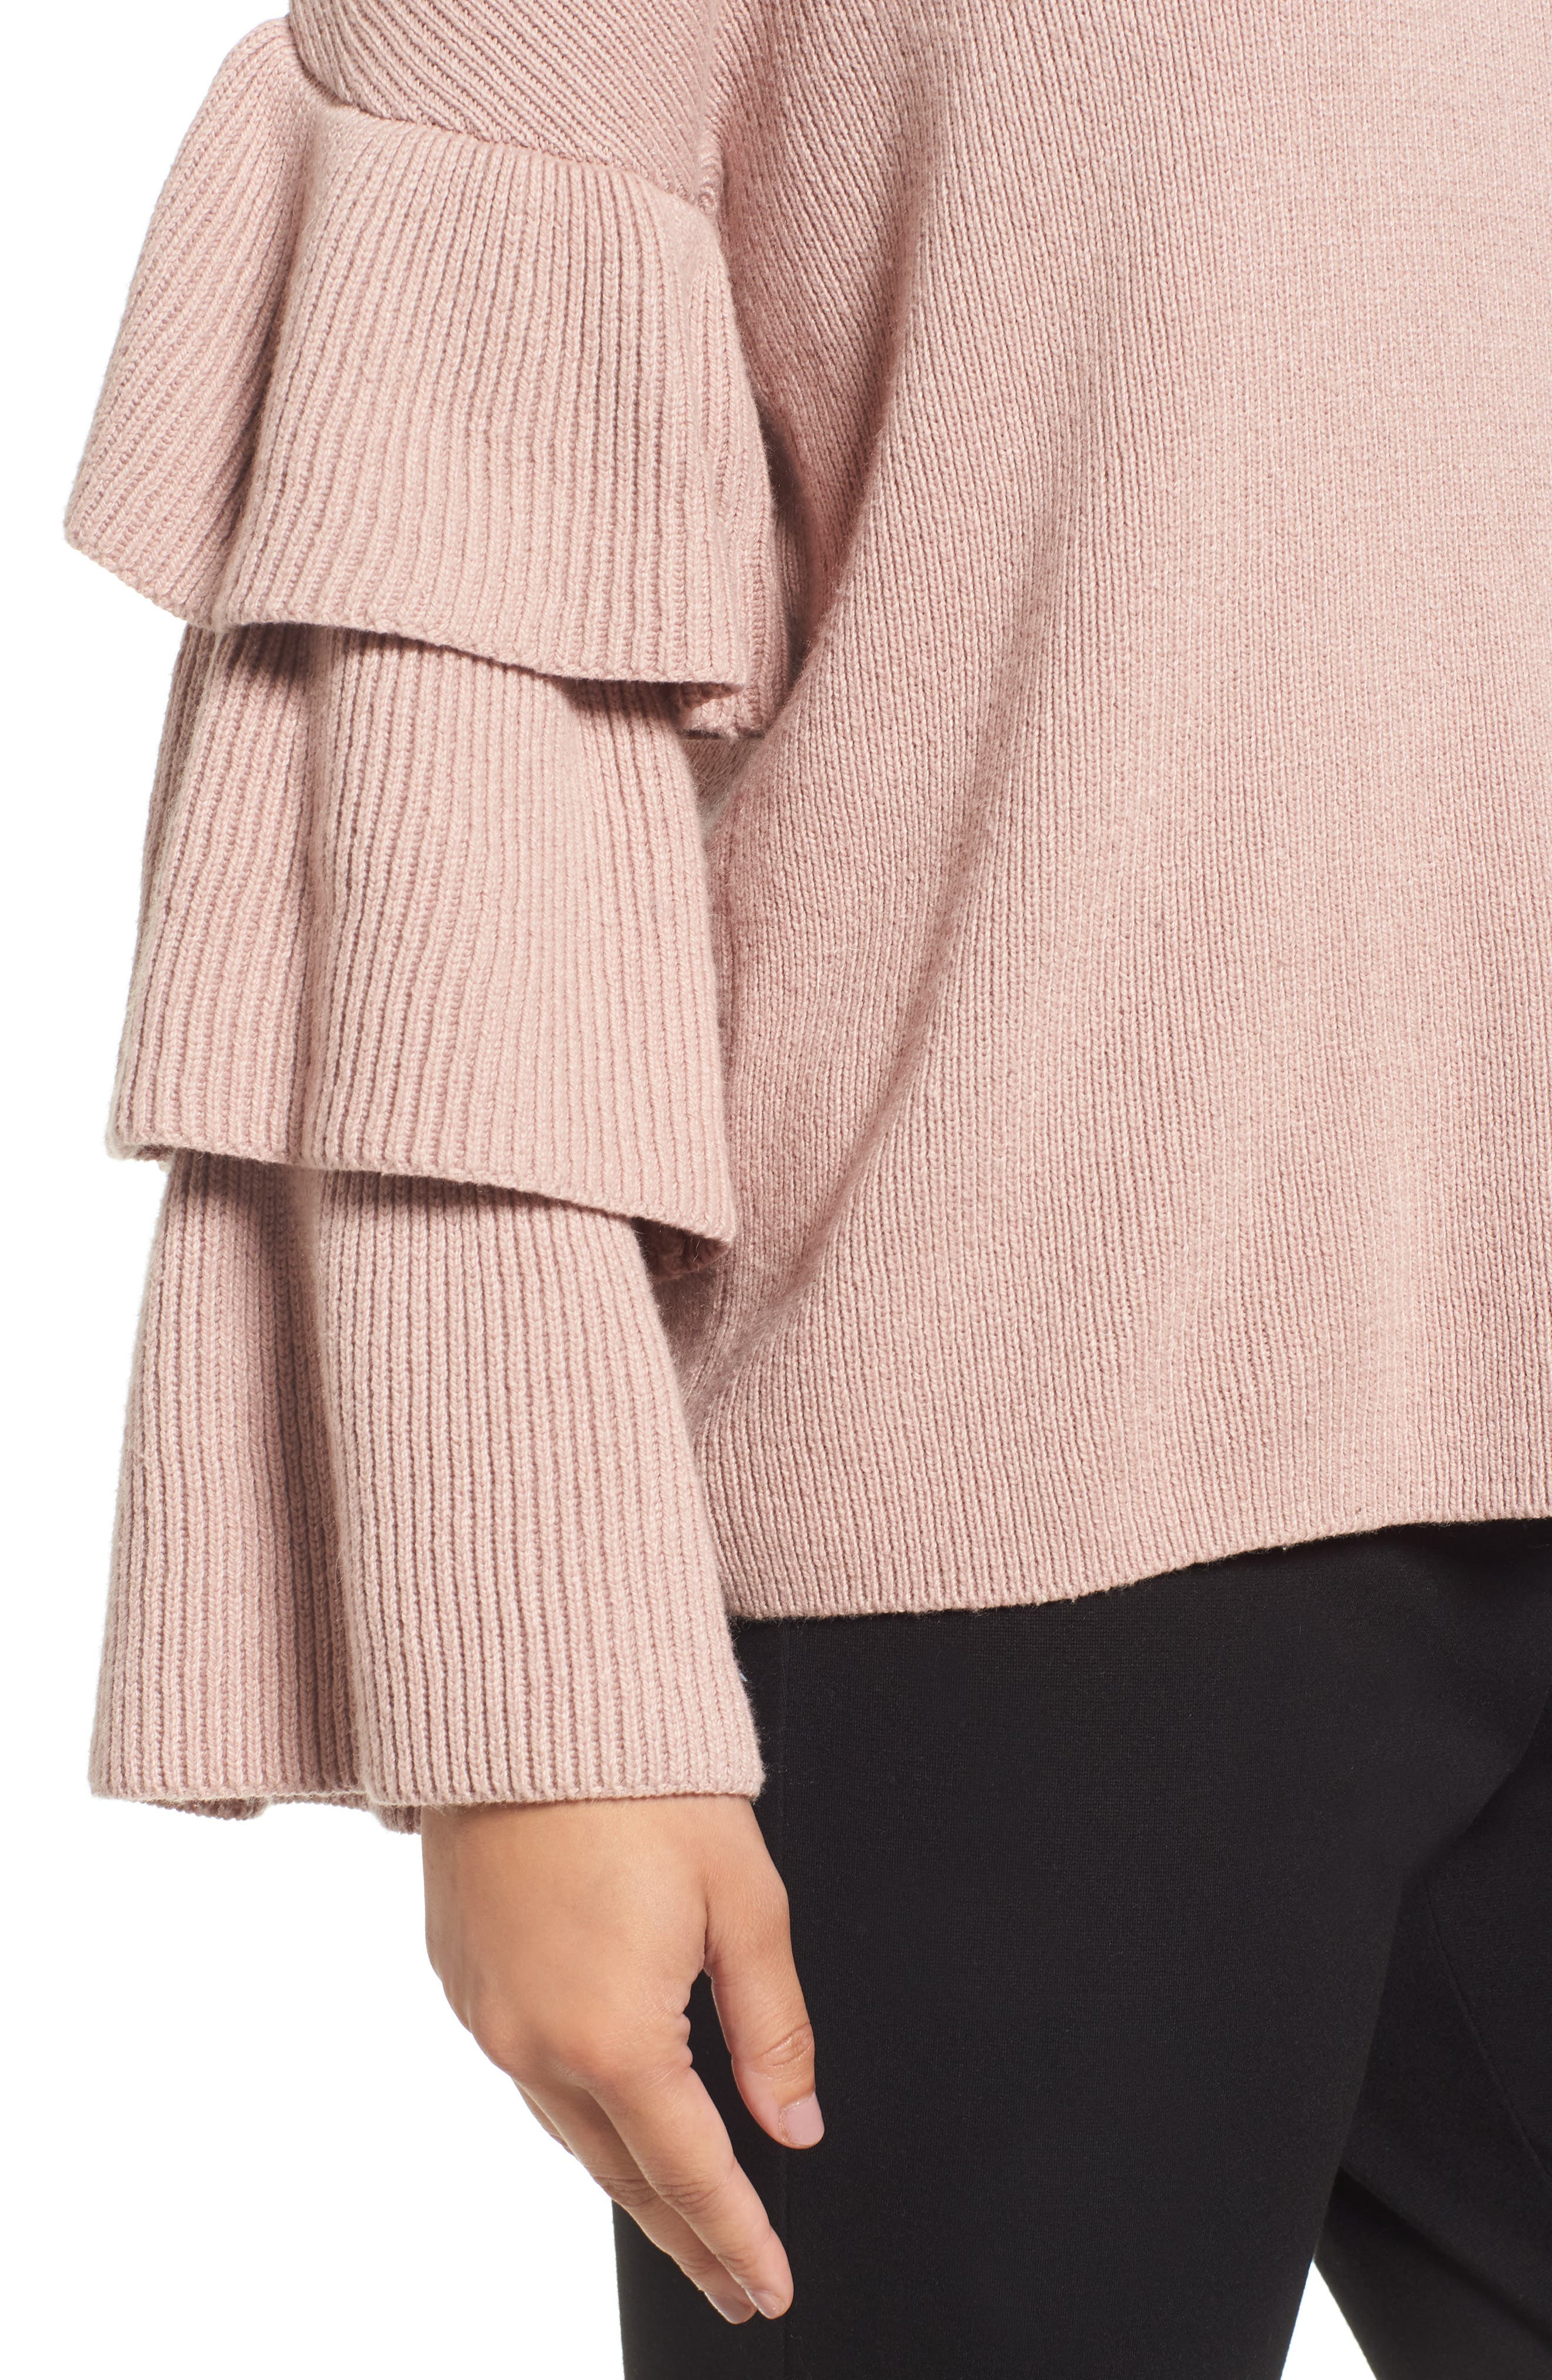 Ruffle Sleeve Sweater,                             Alternate thumbnail 7, color,                             Pink Adobe